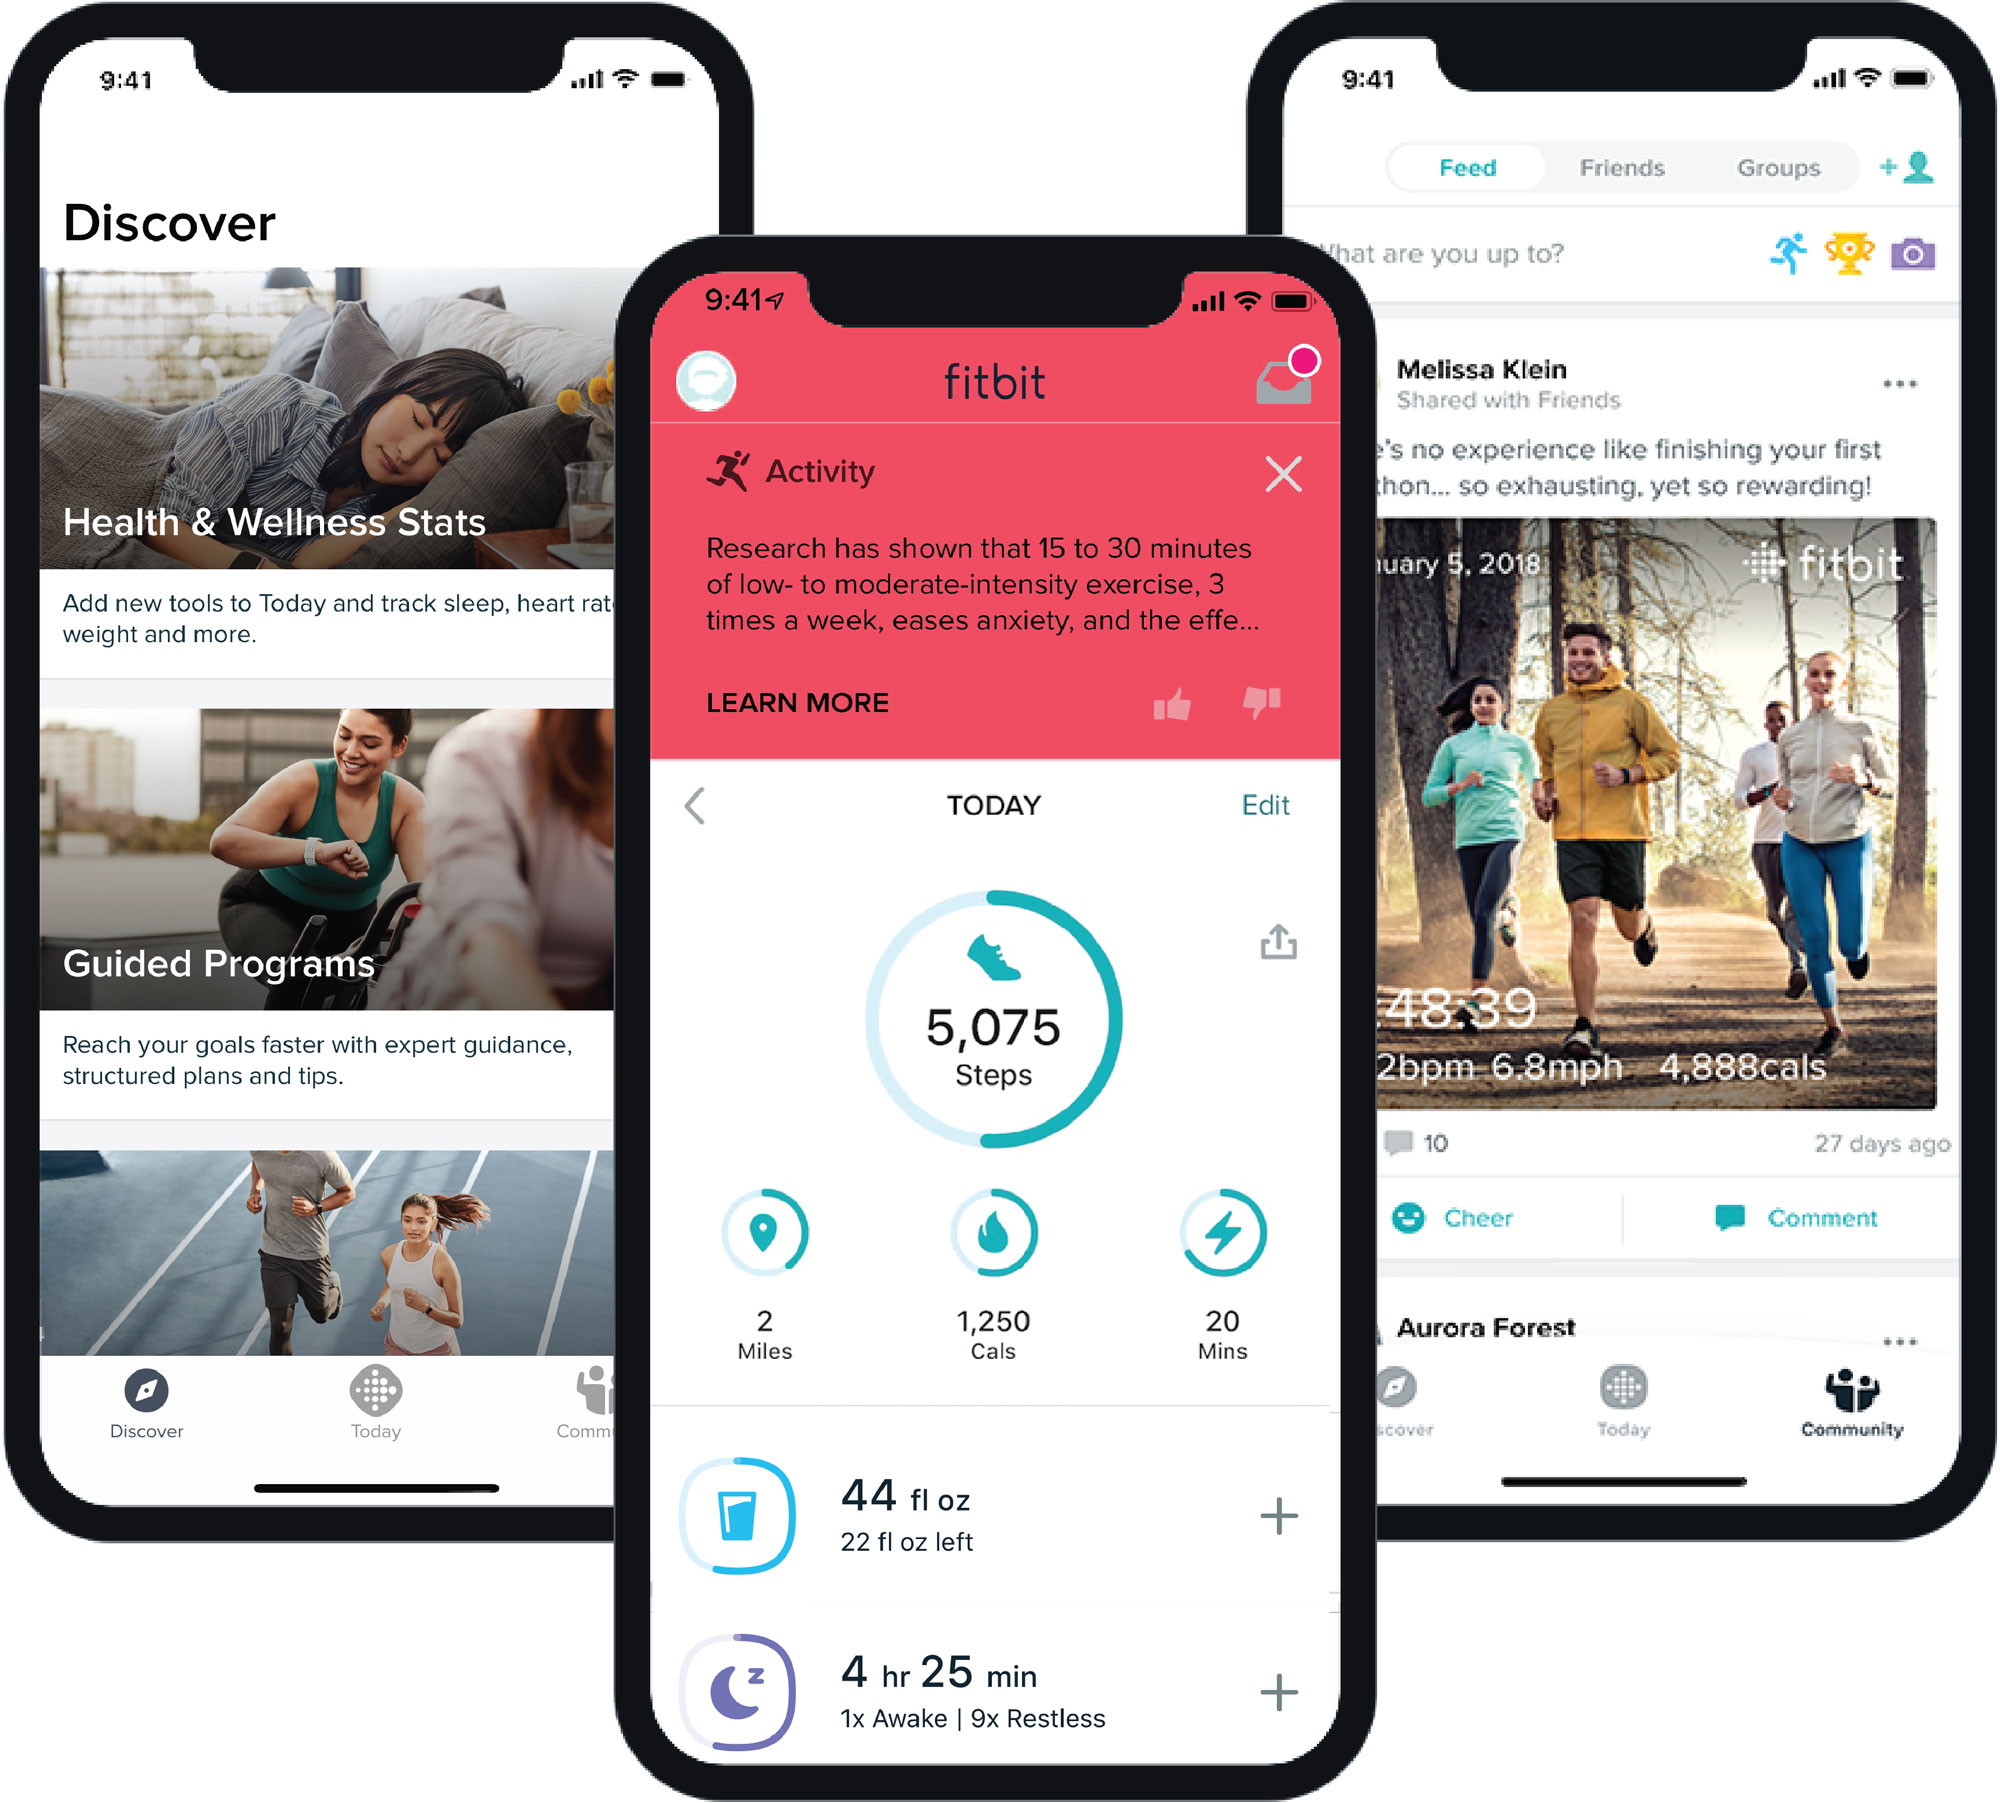 How do I use the Fitbit app?